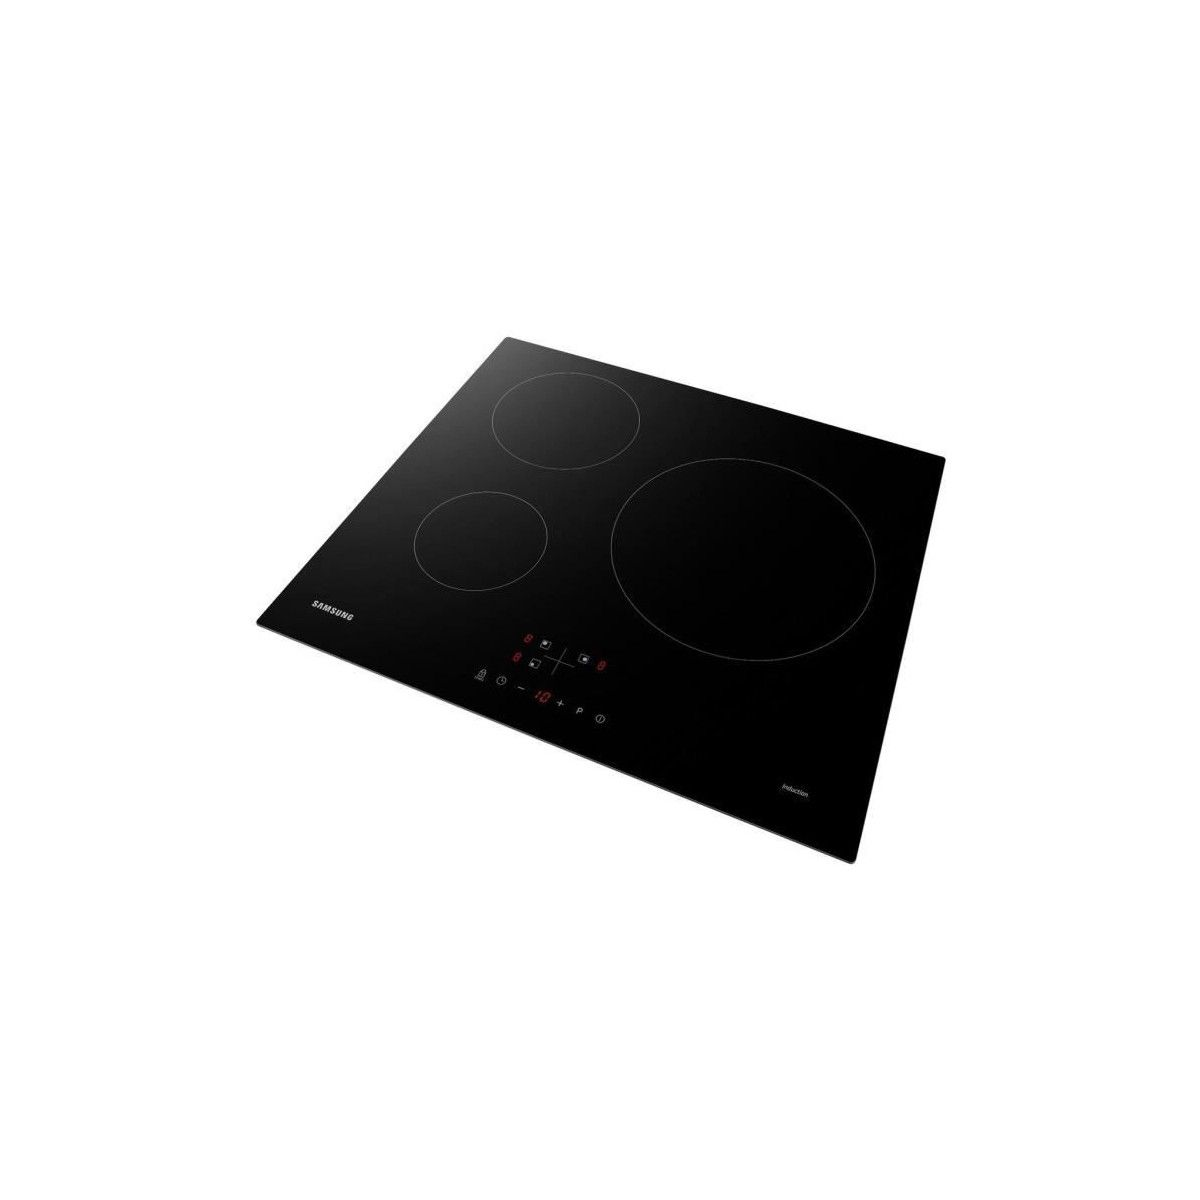 Table De Cuisson Vitrocéramique Pas Cher samsung nz63m3nm1bb/ur - table de cuisson induction - 3 zones - 7200 w -  l59 x p57 cm - revetement verre - noir